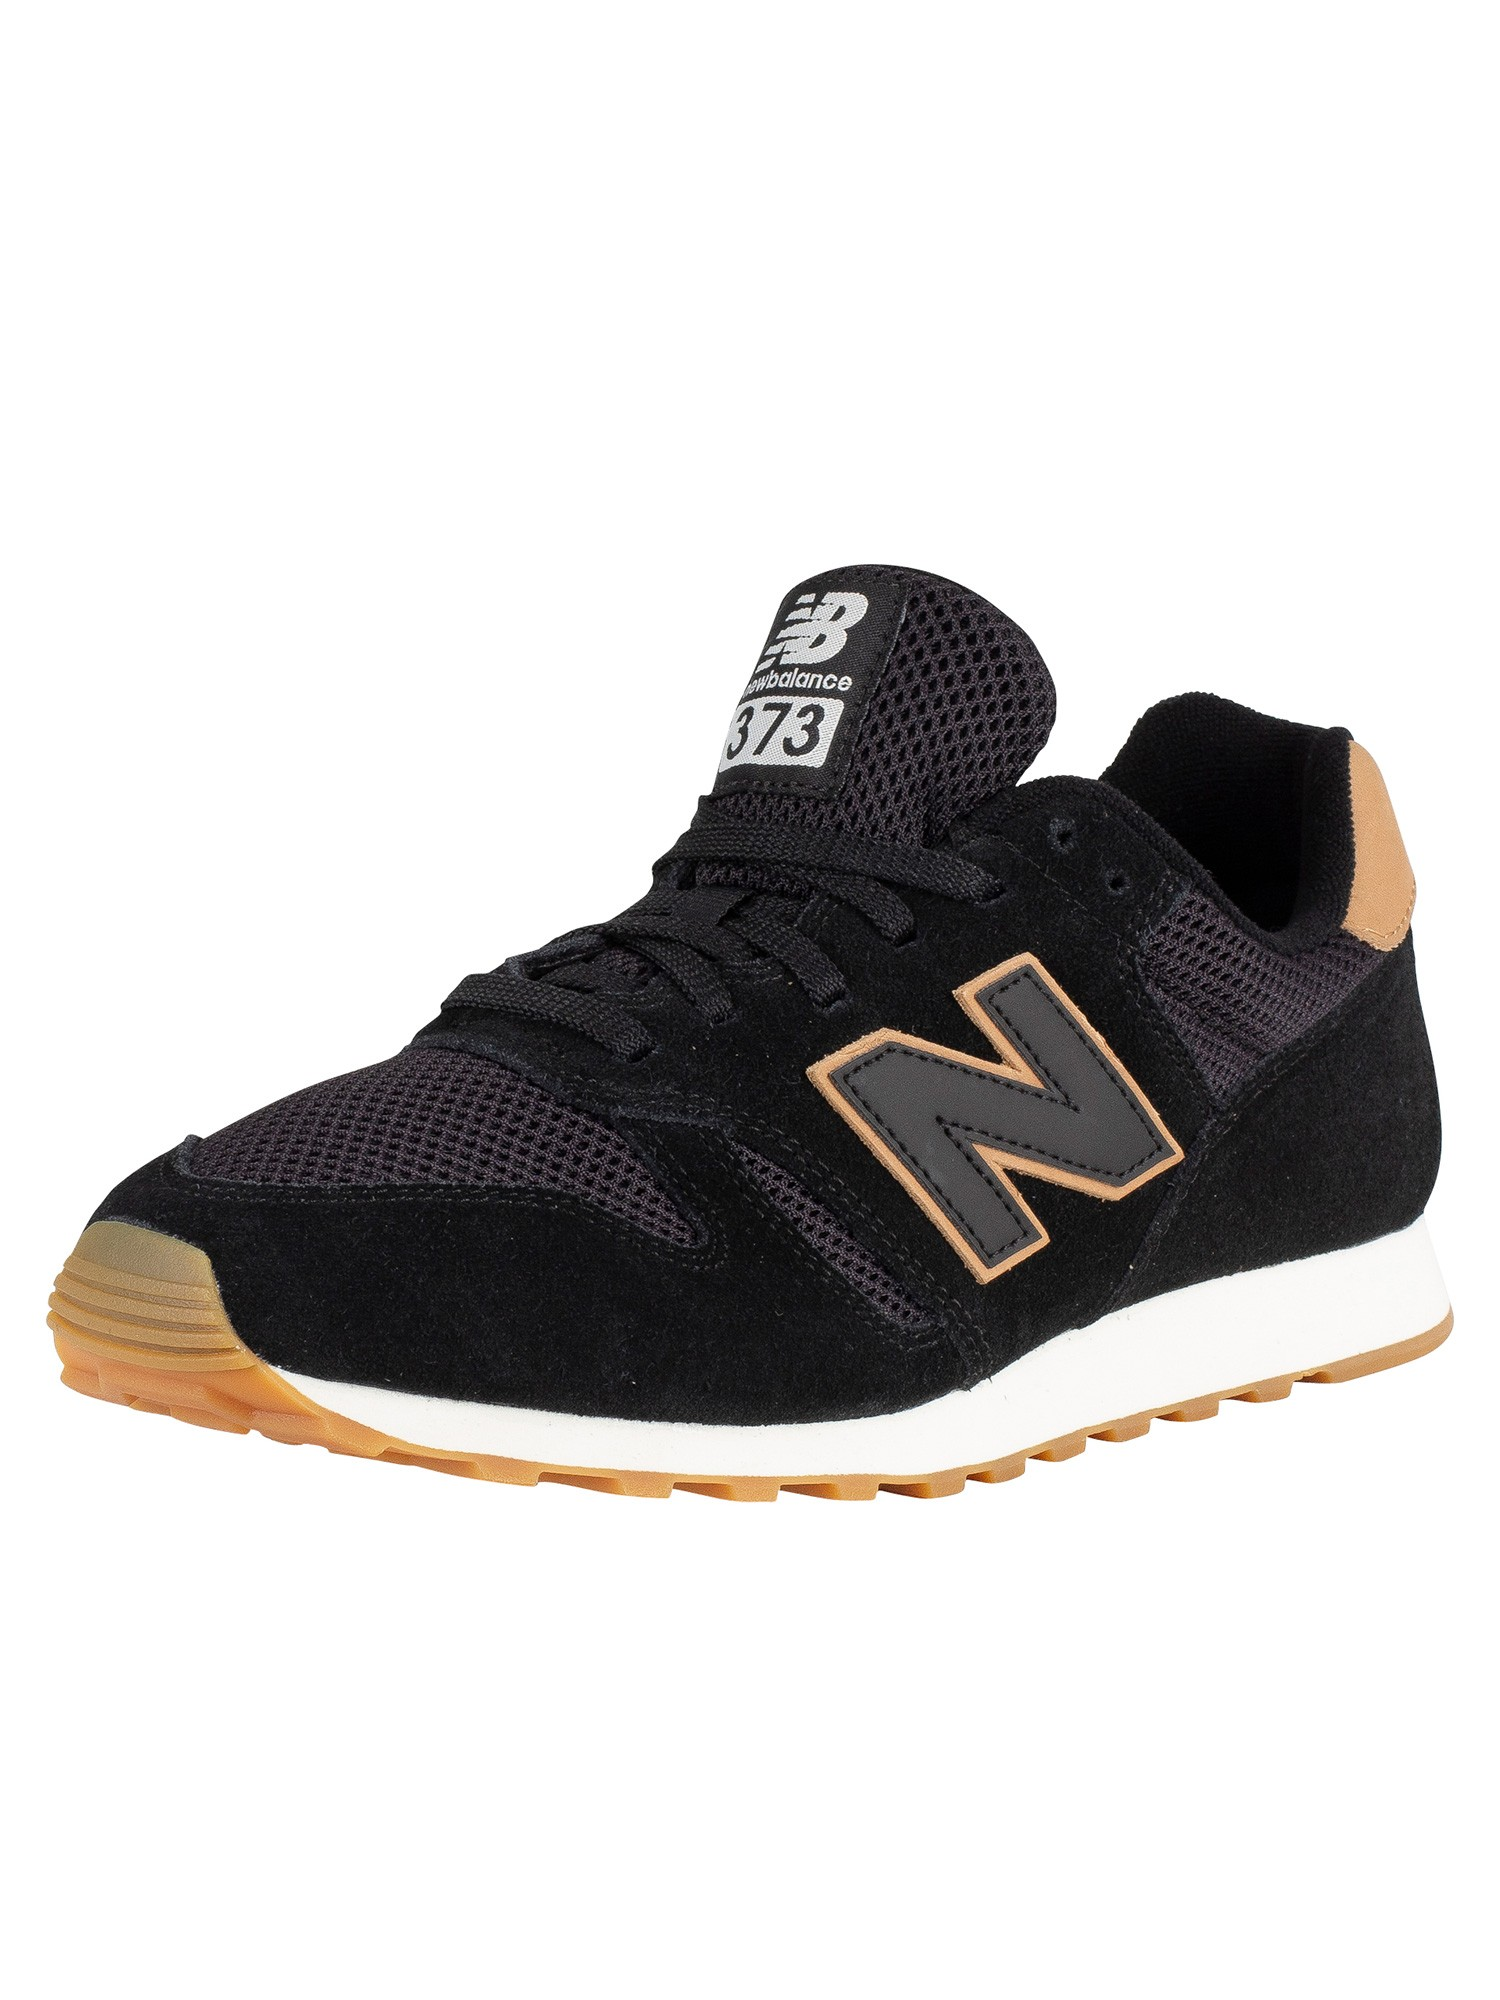 Image is loading New-Balance-Men-039-s-373-Suede-Trainers- dac29b091823f